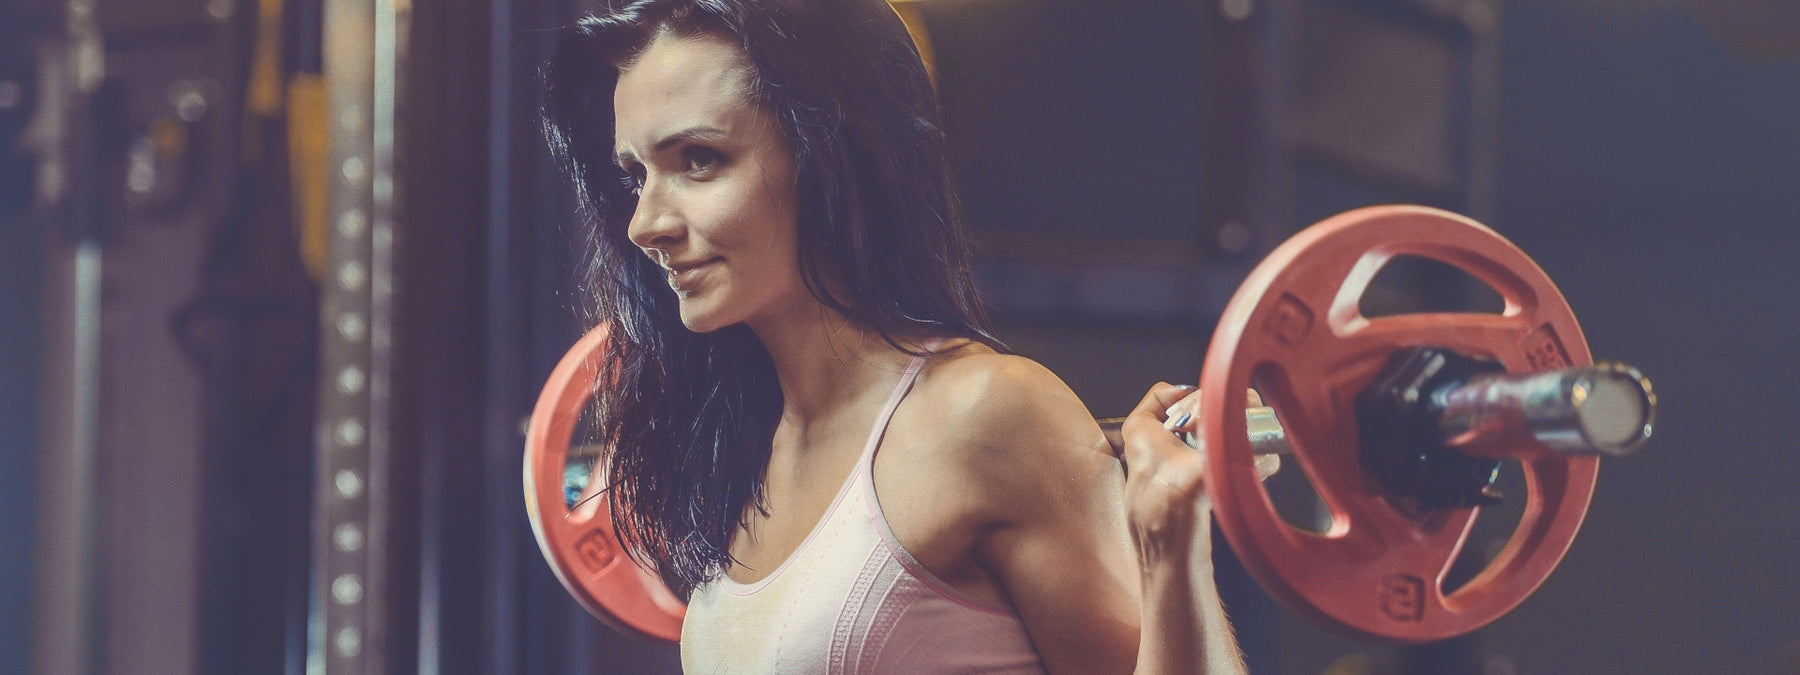 Five Common Lifting Problems for Women